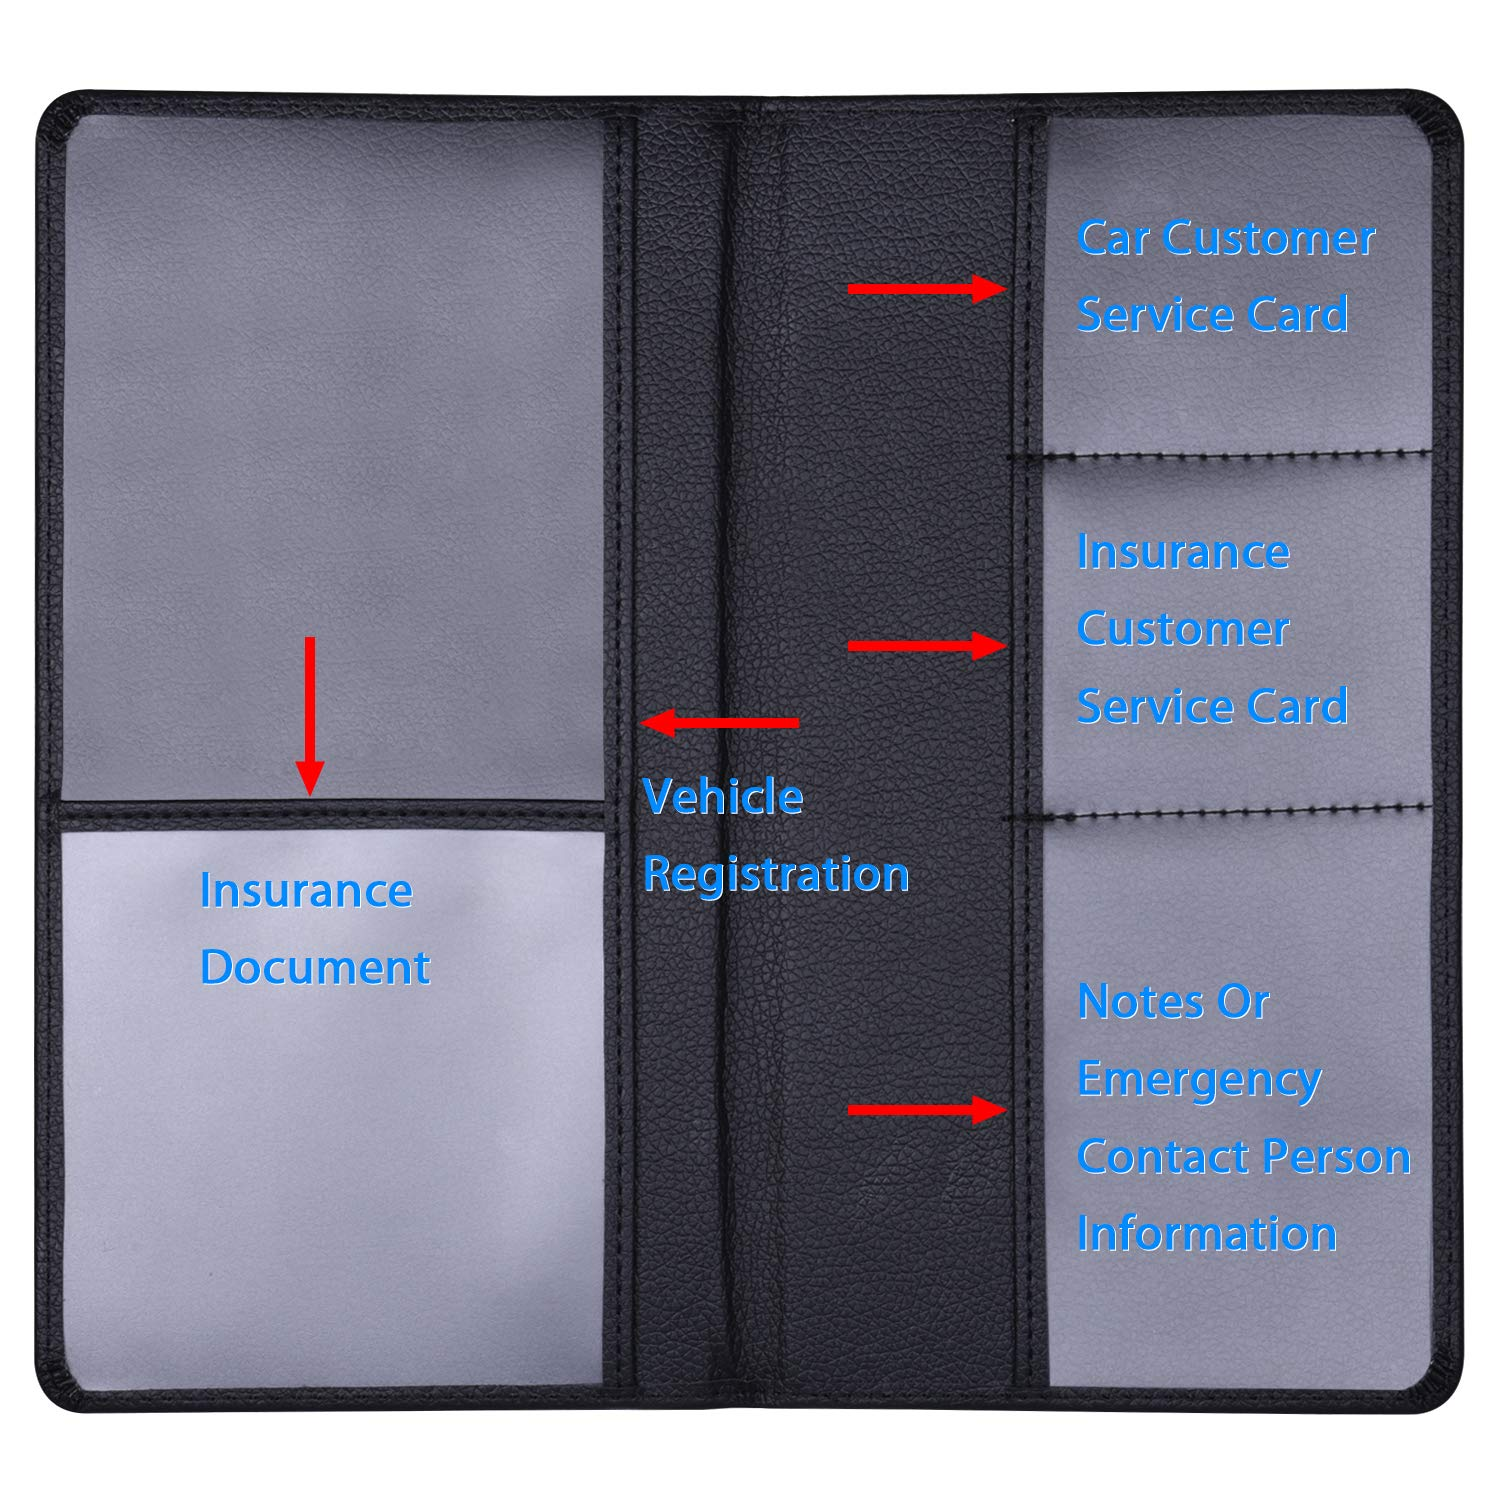 Insurance Paperwork Drivers License Black Car Registration Holder Wisdompro Premium PU Leather Vehicle Glove Box Documents Wallet Case Organizer for ID Key Contact Information Cards